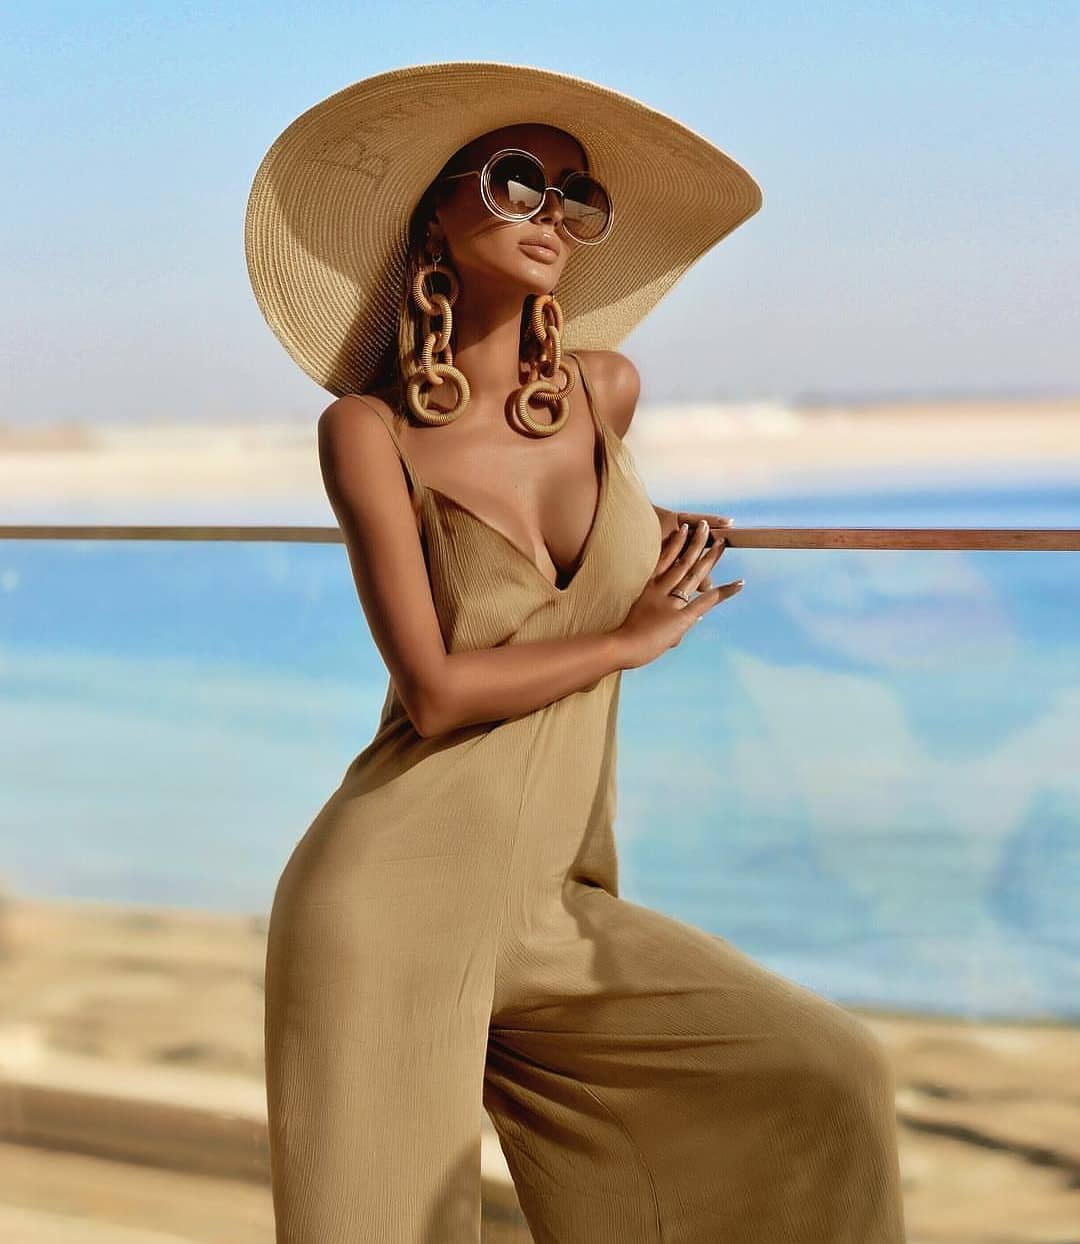 Wide Pants Safari Beige Jumpsuit For Summer Getaways 2019